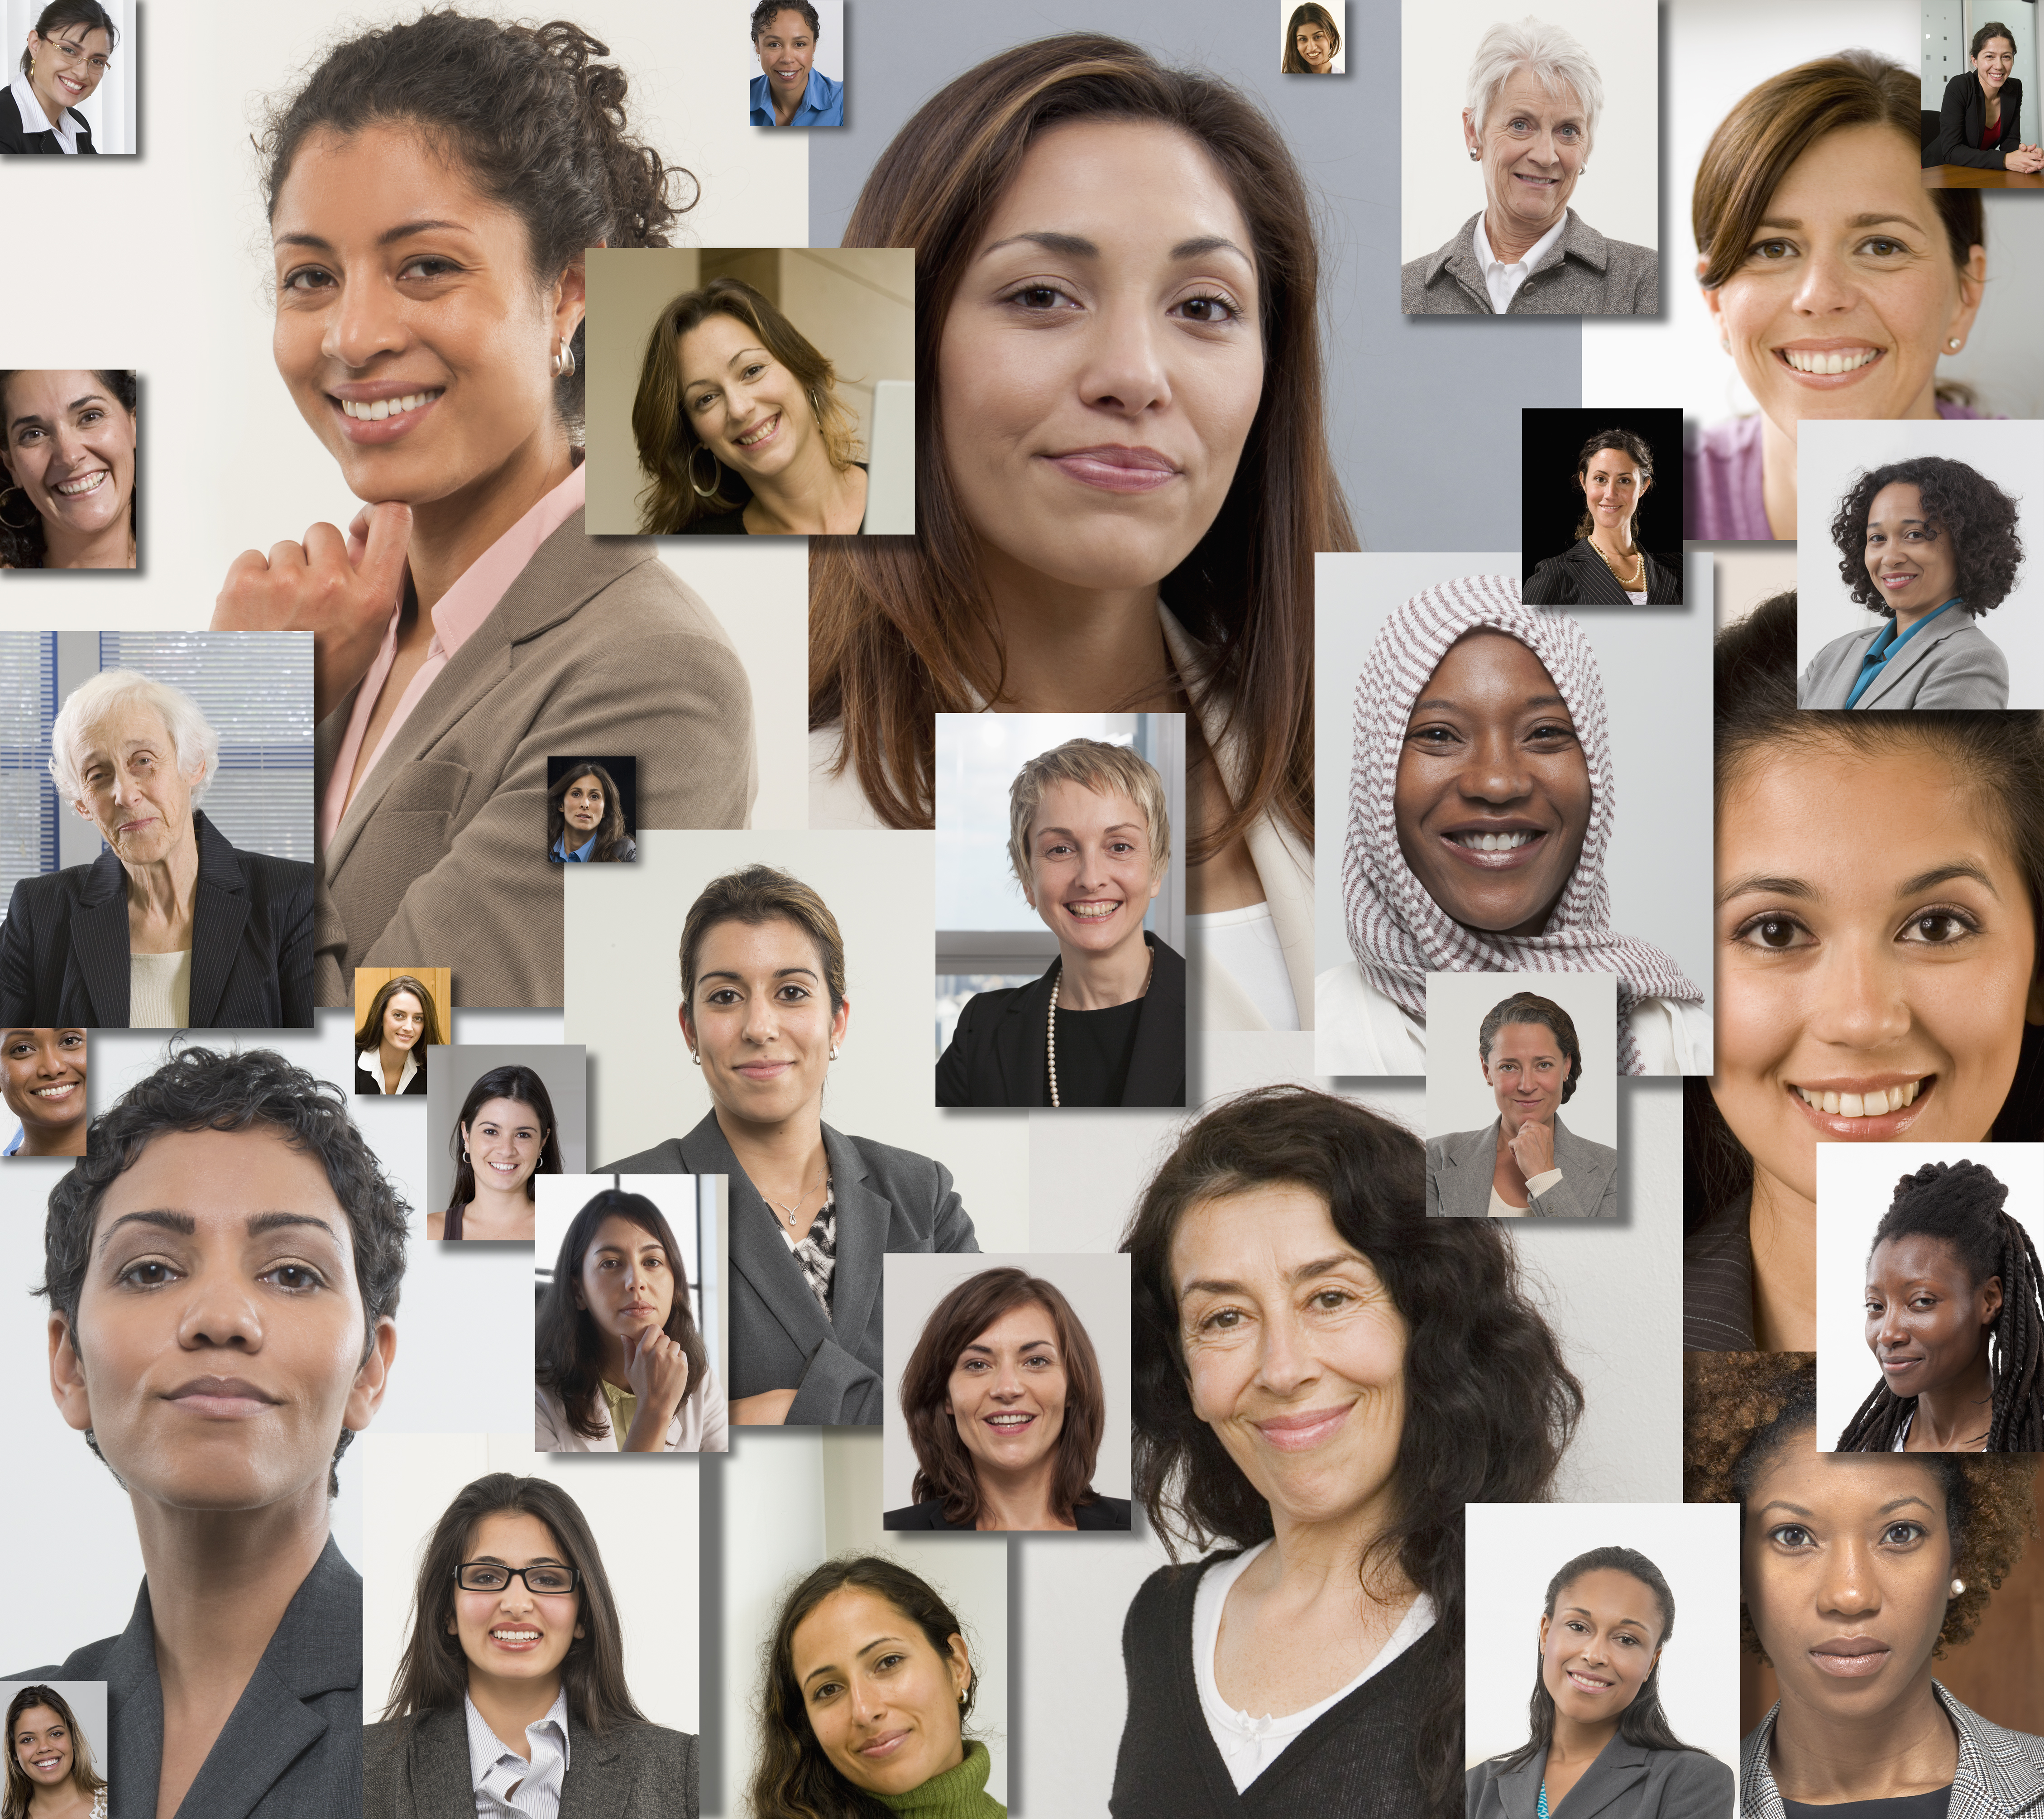 Collage of professional women